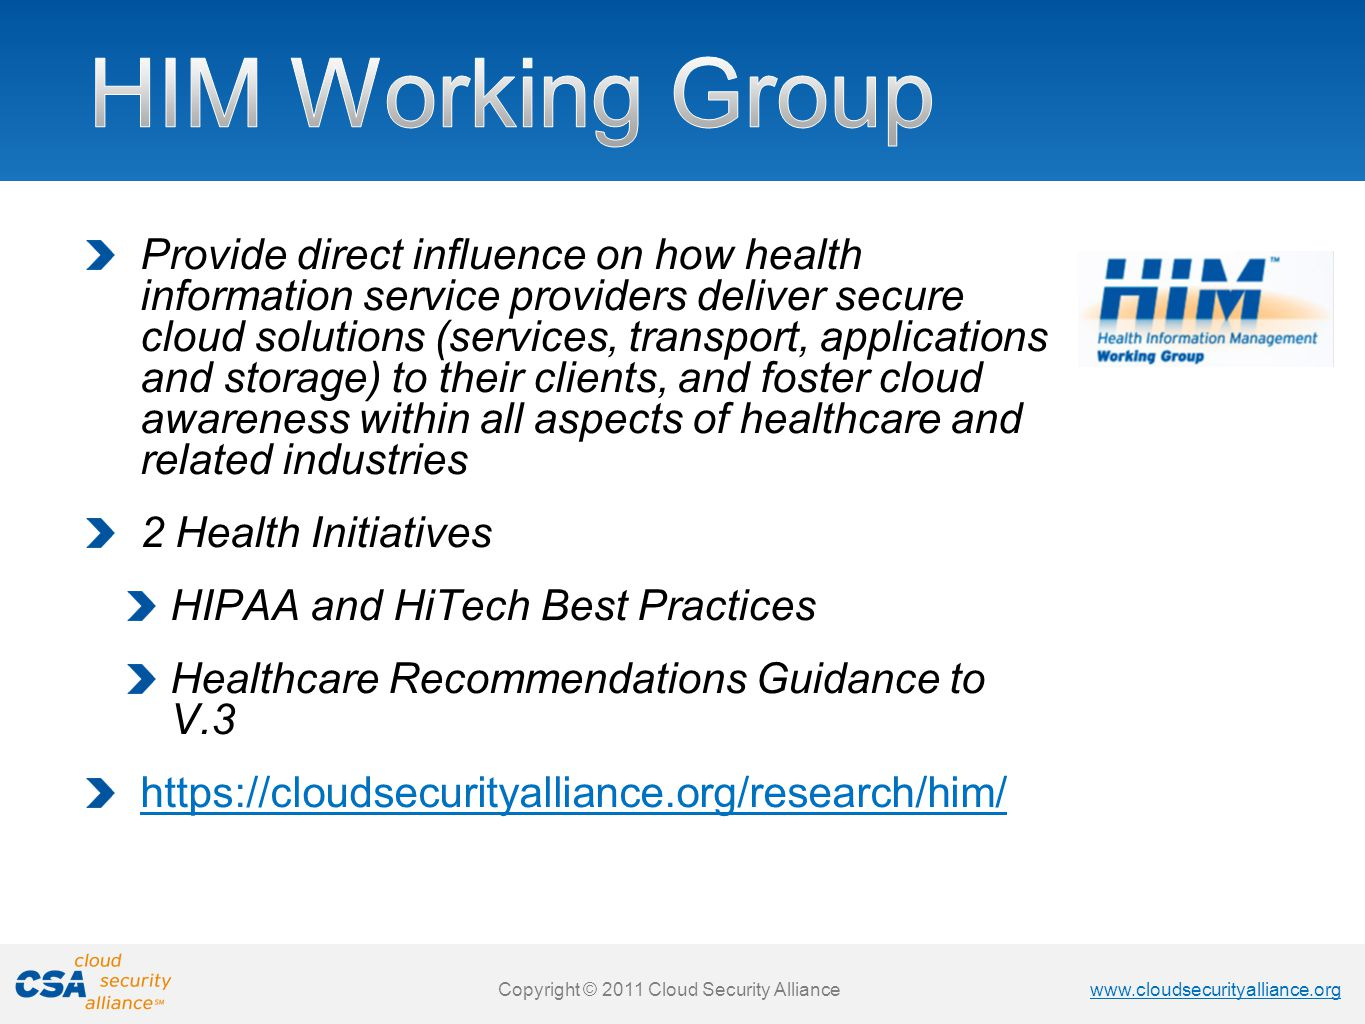 HIM Working Group